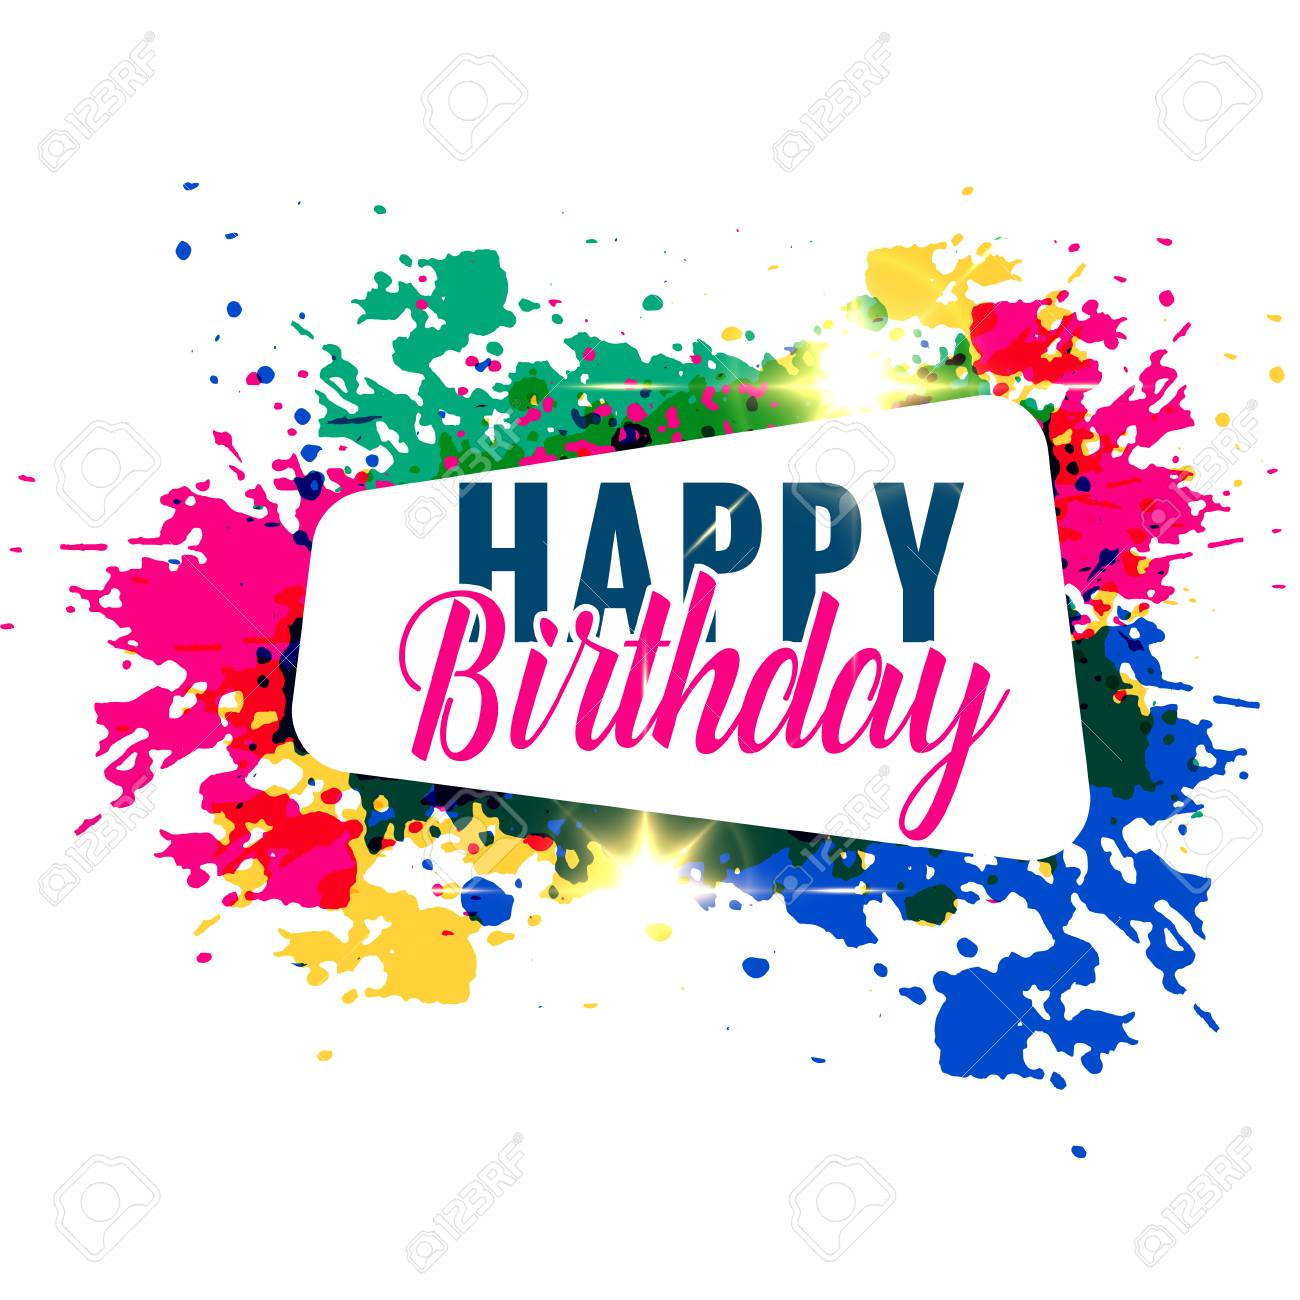 Abstract Colorful Splash Happy Birthday Greeting Design Royalty Free Cliparts Vectors And Stock Illustration Image 97993480